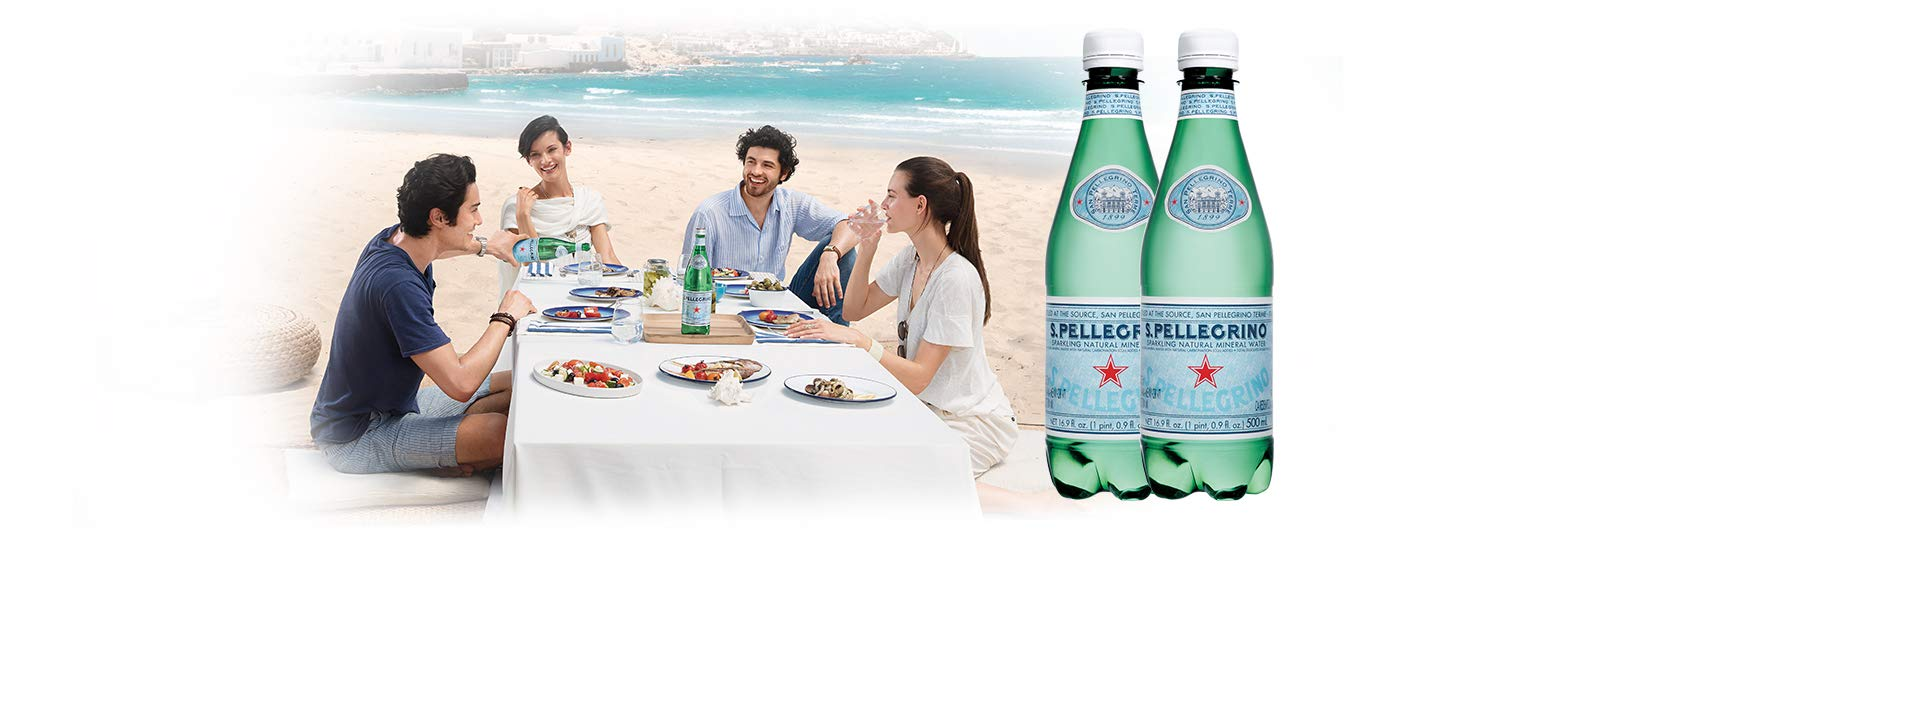 S.Pellegrino Sparkling Natural Mineral Water, 16.9 fl oz. (24 Count) by San Pellegrino (Image #2)